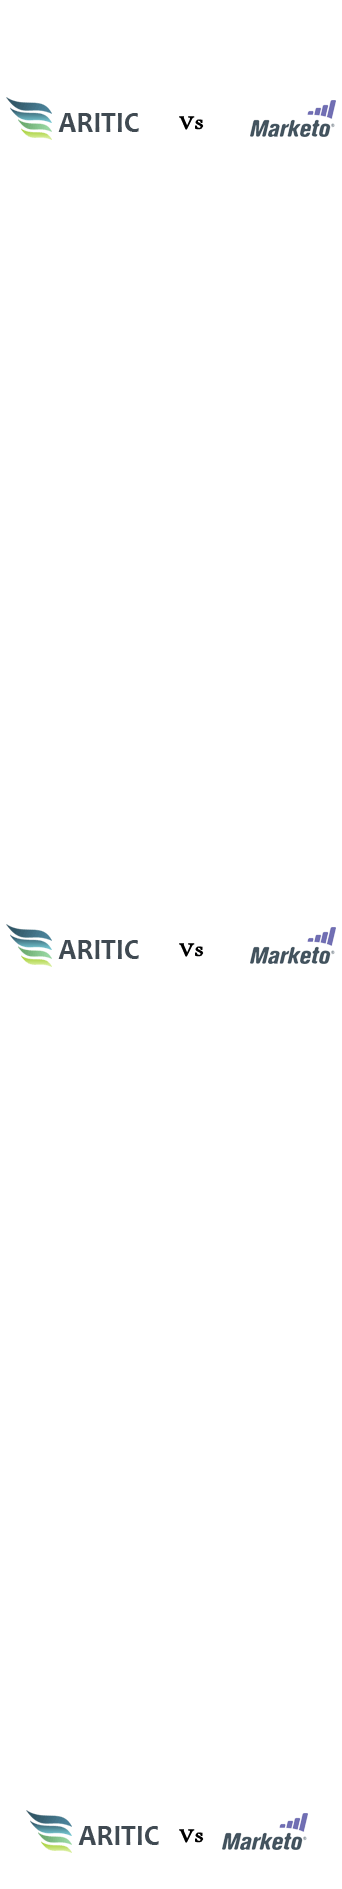 aritic vs marketo